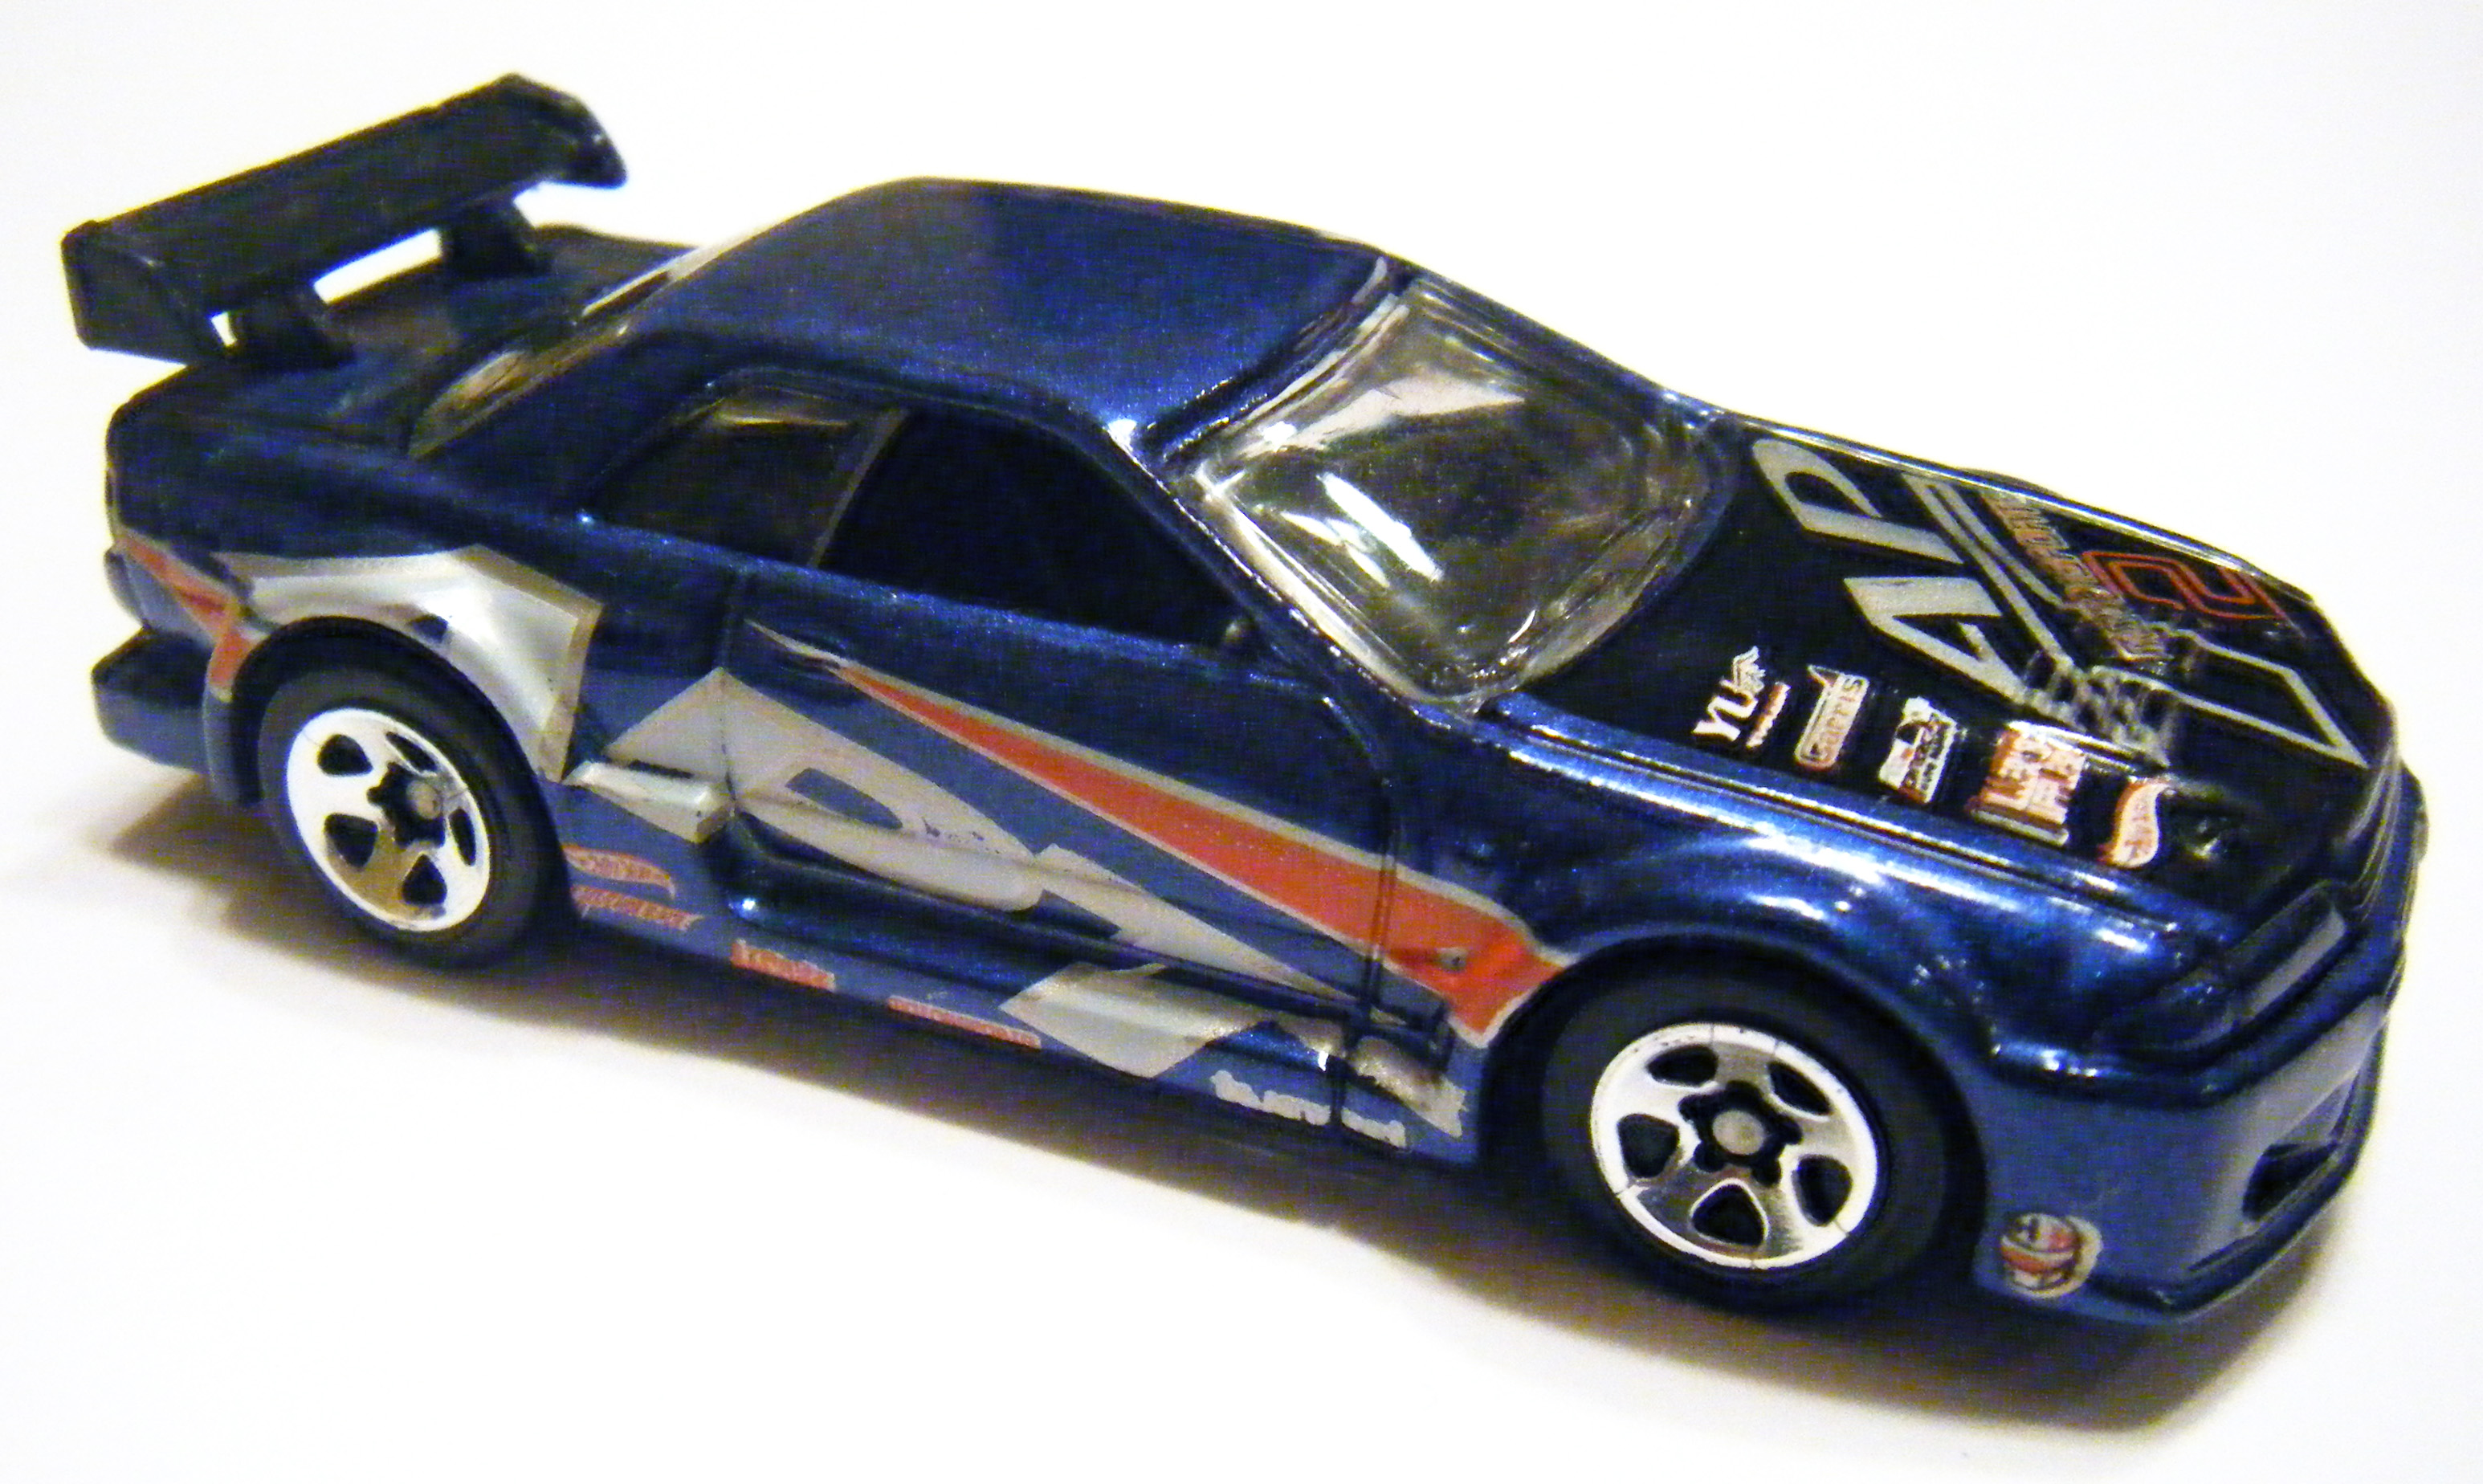 2002 Hot Wheels, Alec Tam,